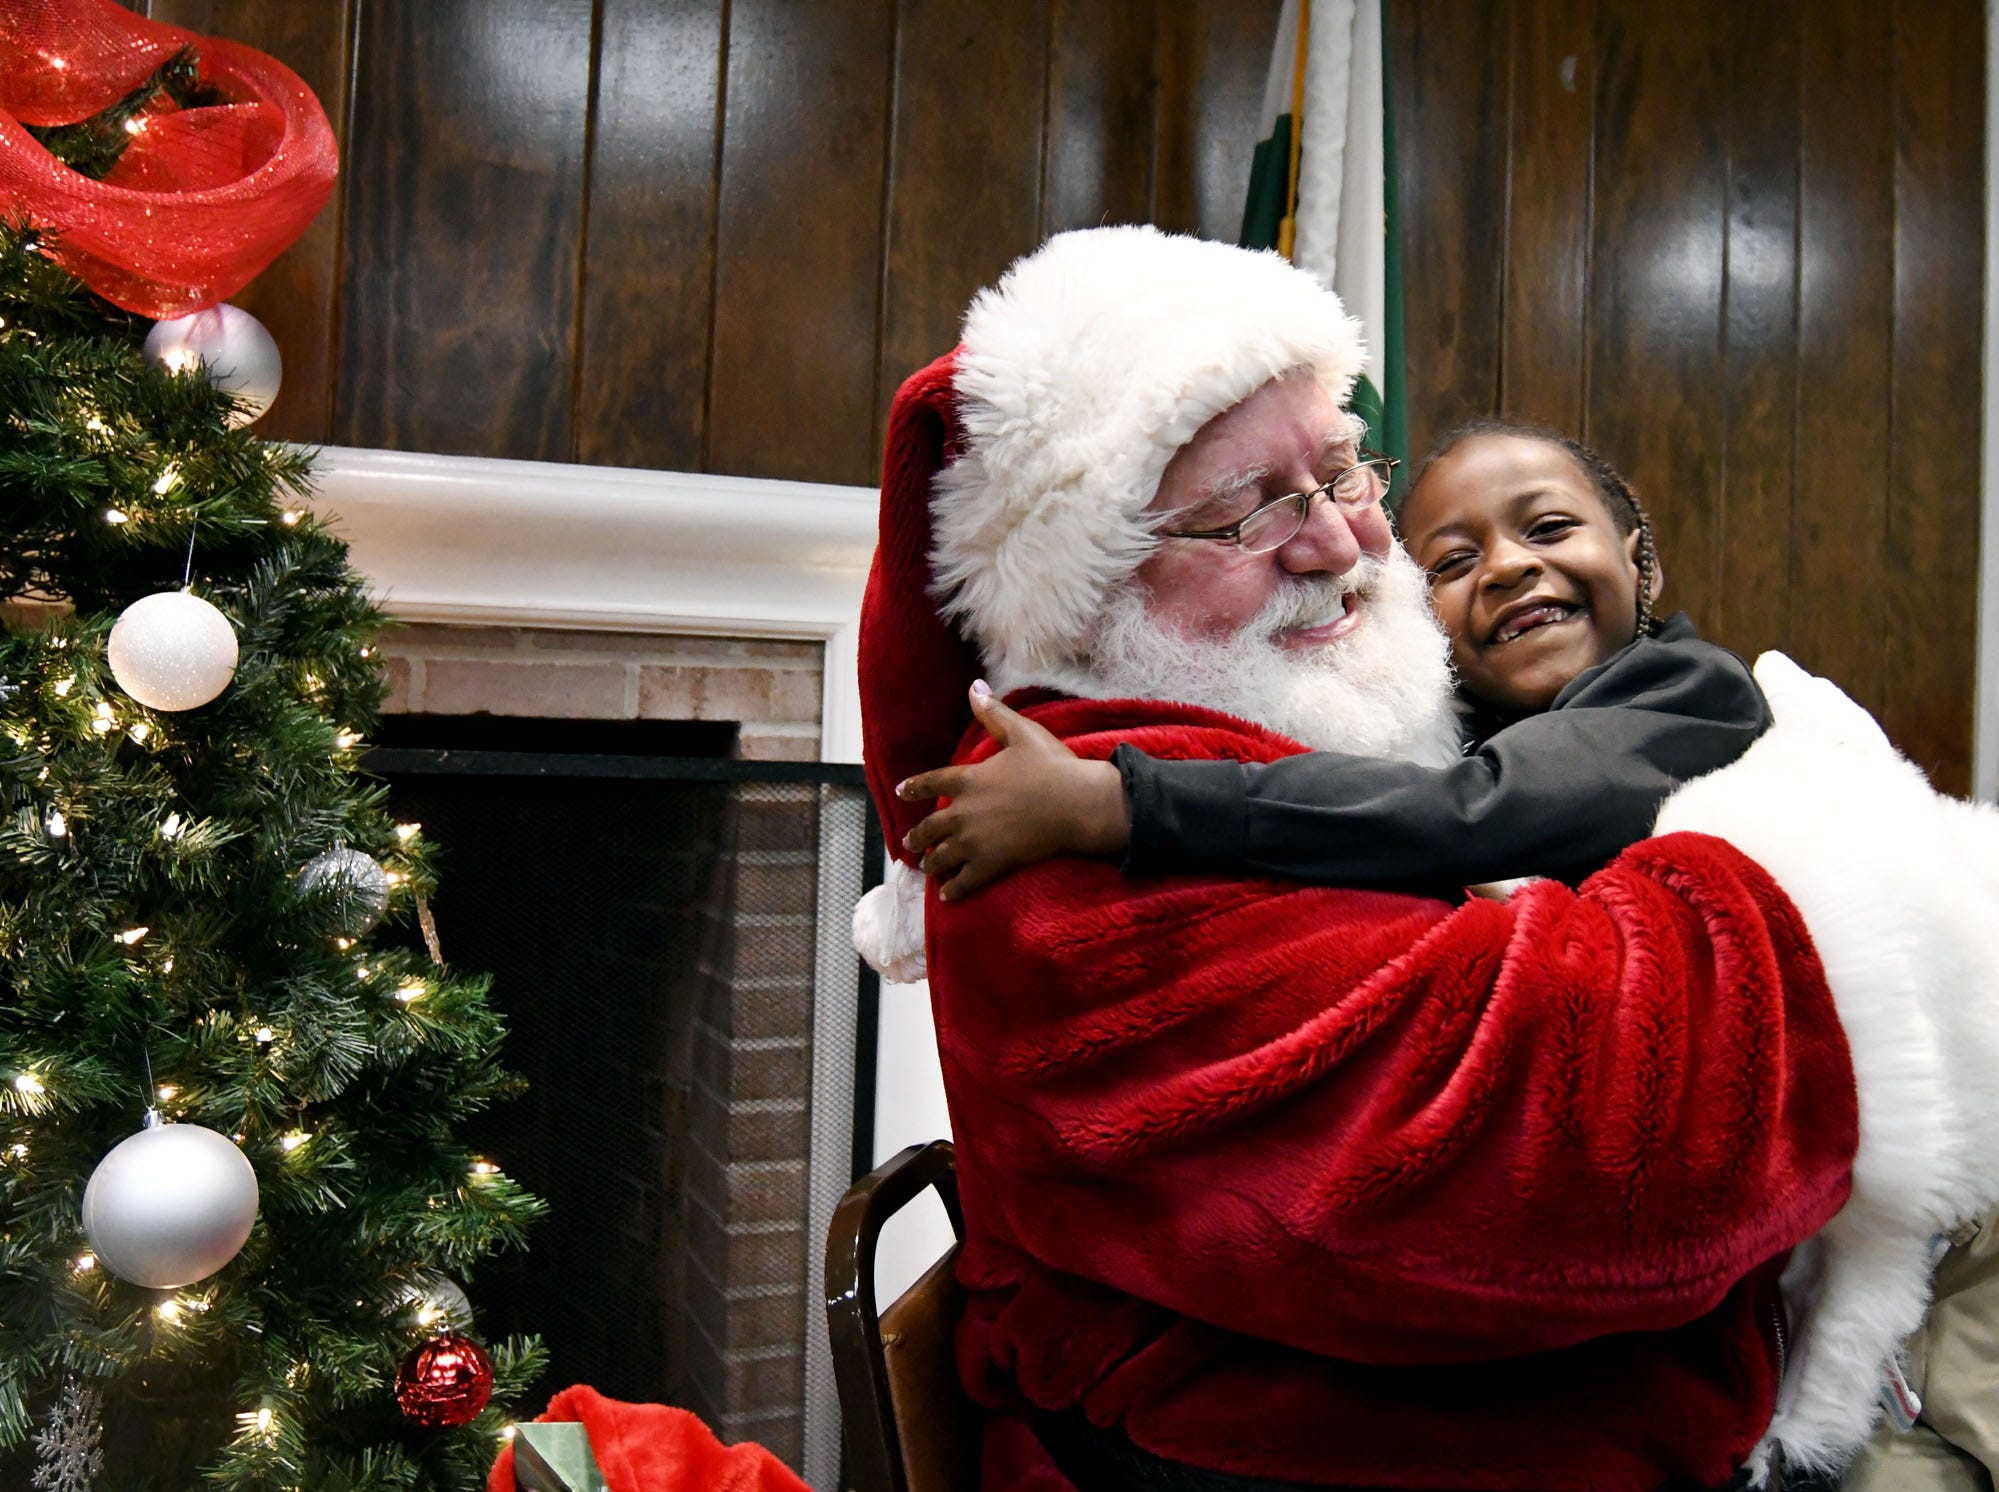 Kadence Brown, 4, hugs Santa Claus during the Hattiesburg Police Department's Victim Service Unit's Hearts of Hope Christmas party for victims affected by violent crimes at Jackie Sherrill Community Center on Thursday, December 20, 2018.